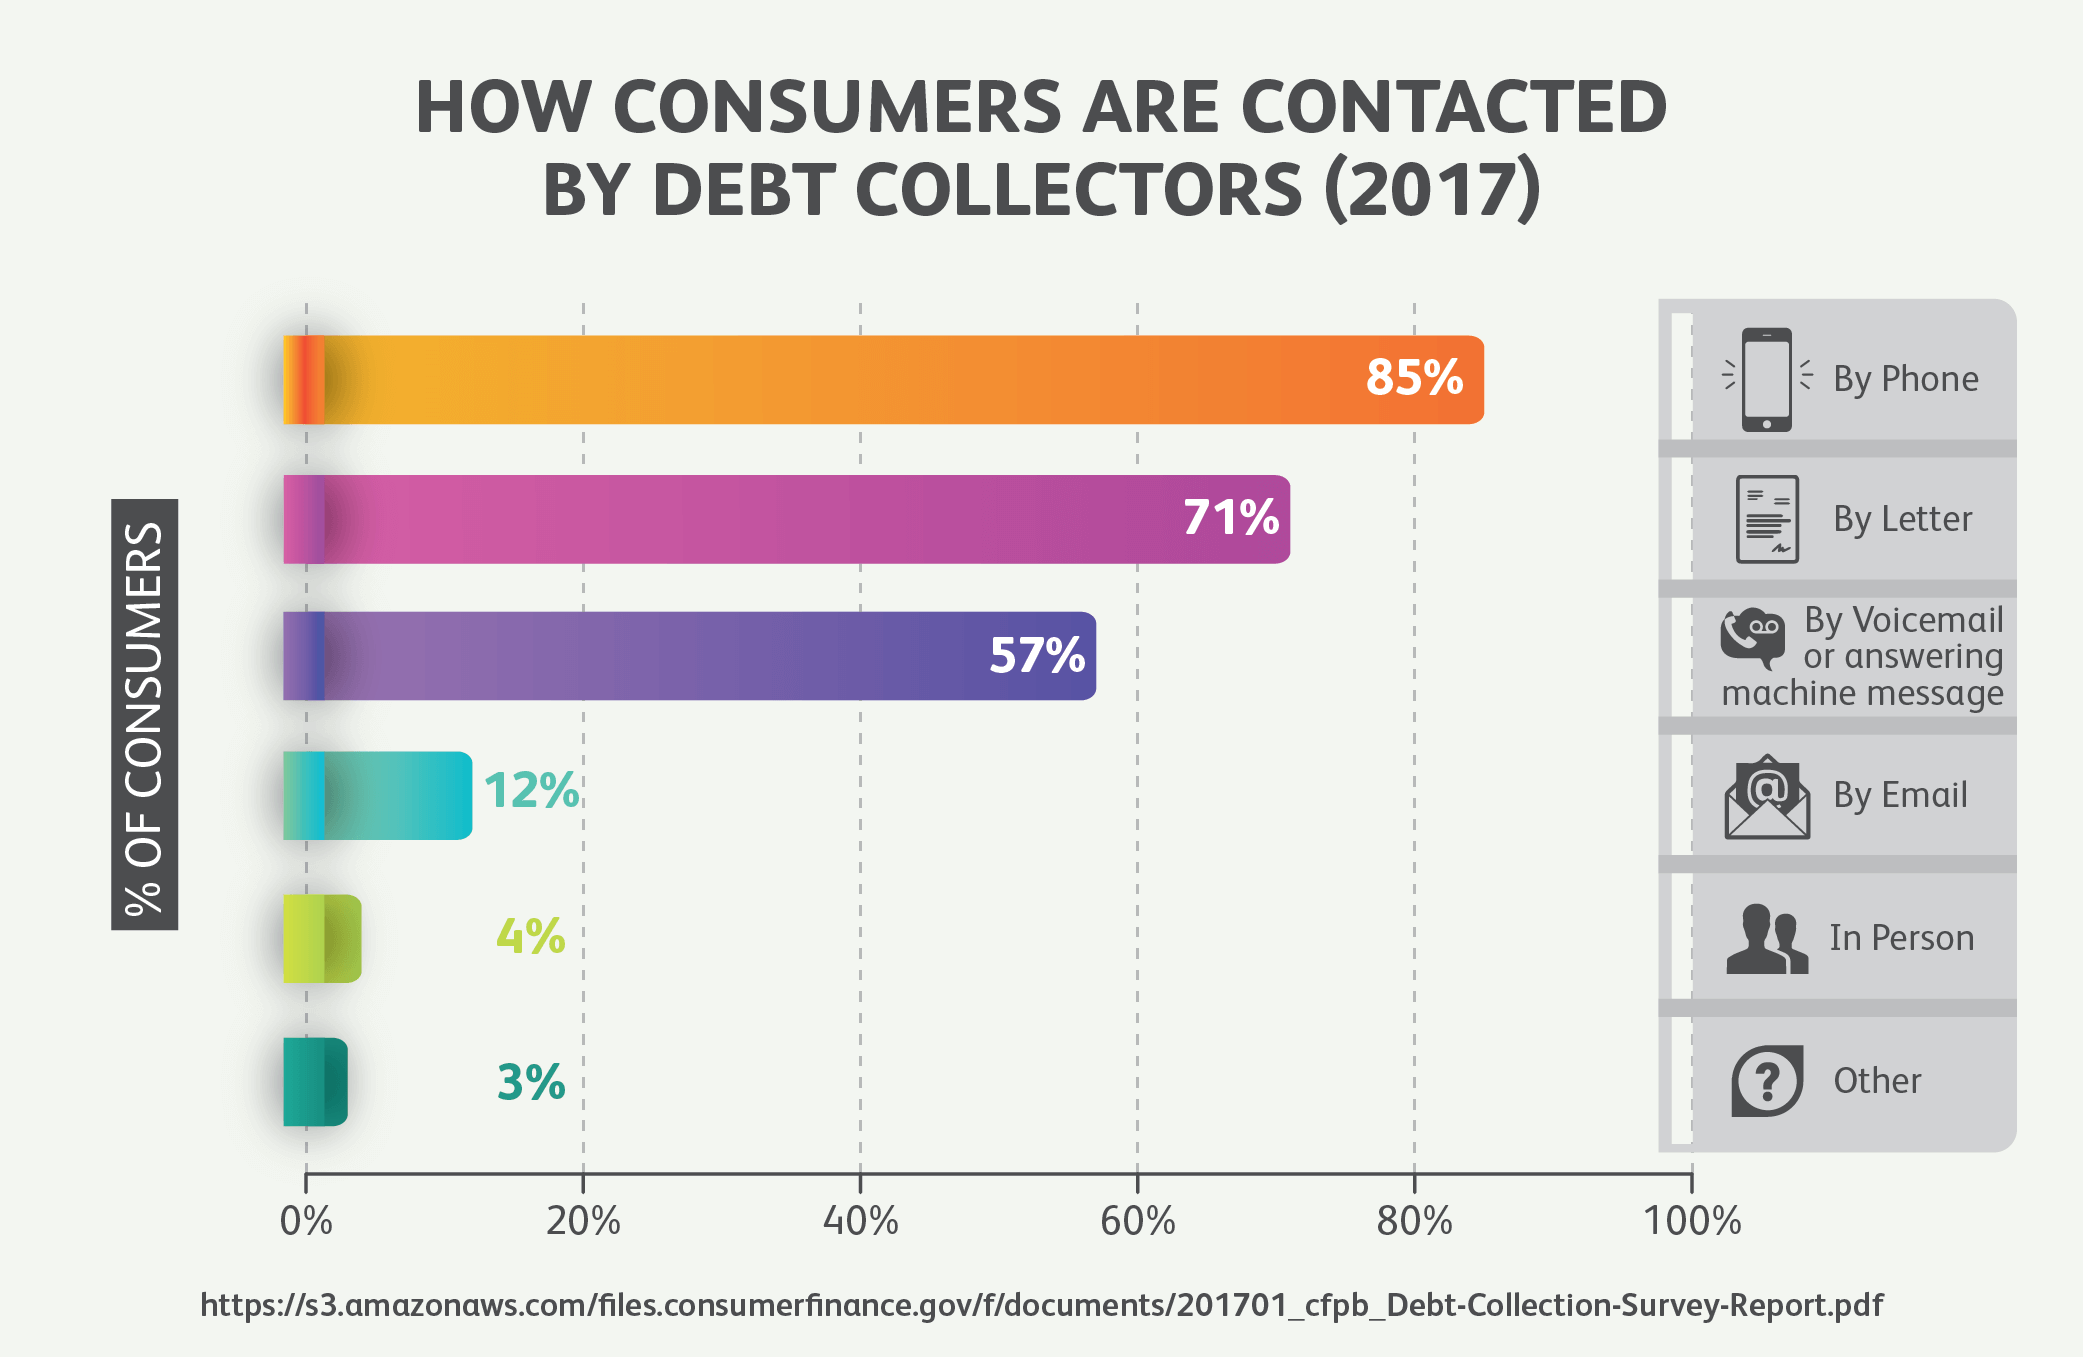 How Consumers Are Contacted By Debt Collectors (2017)